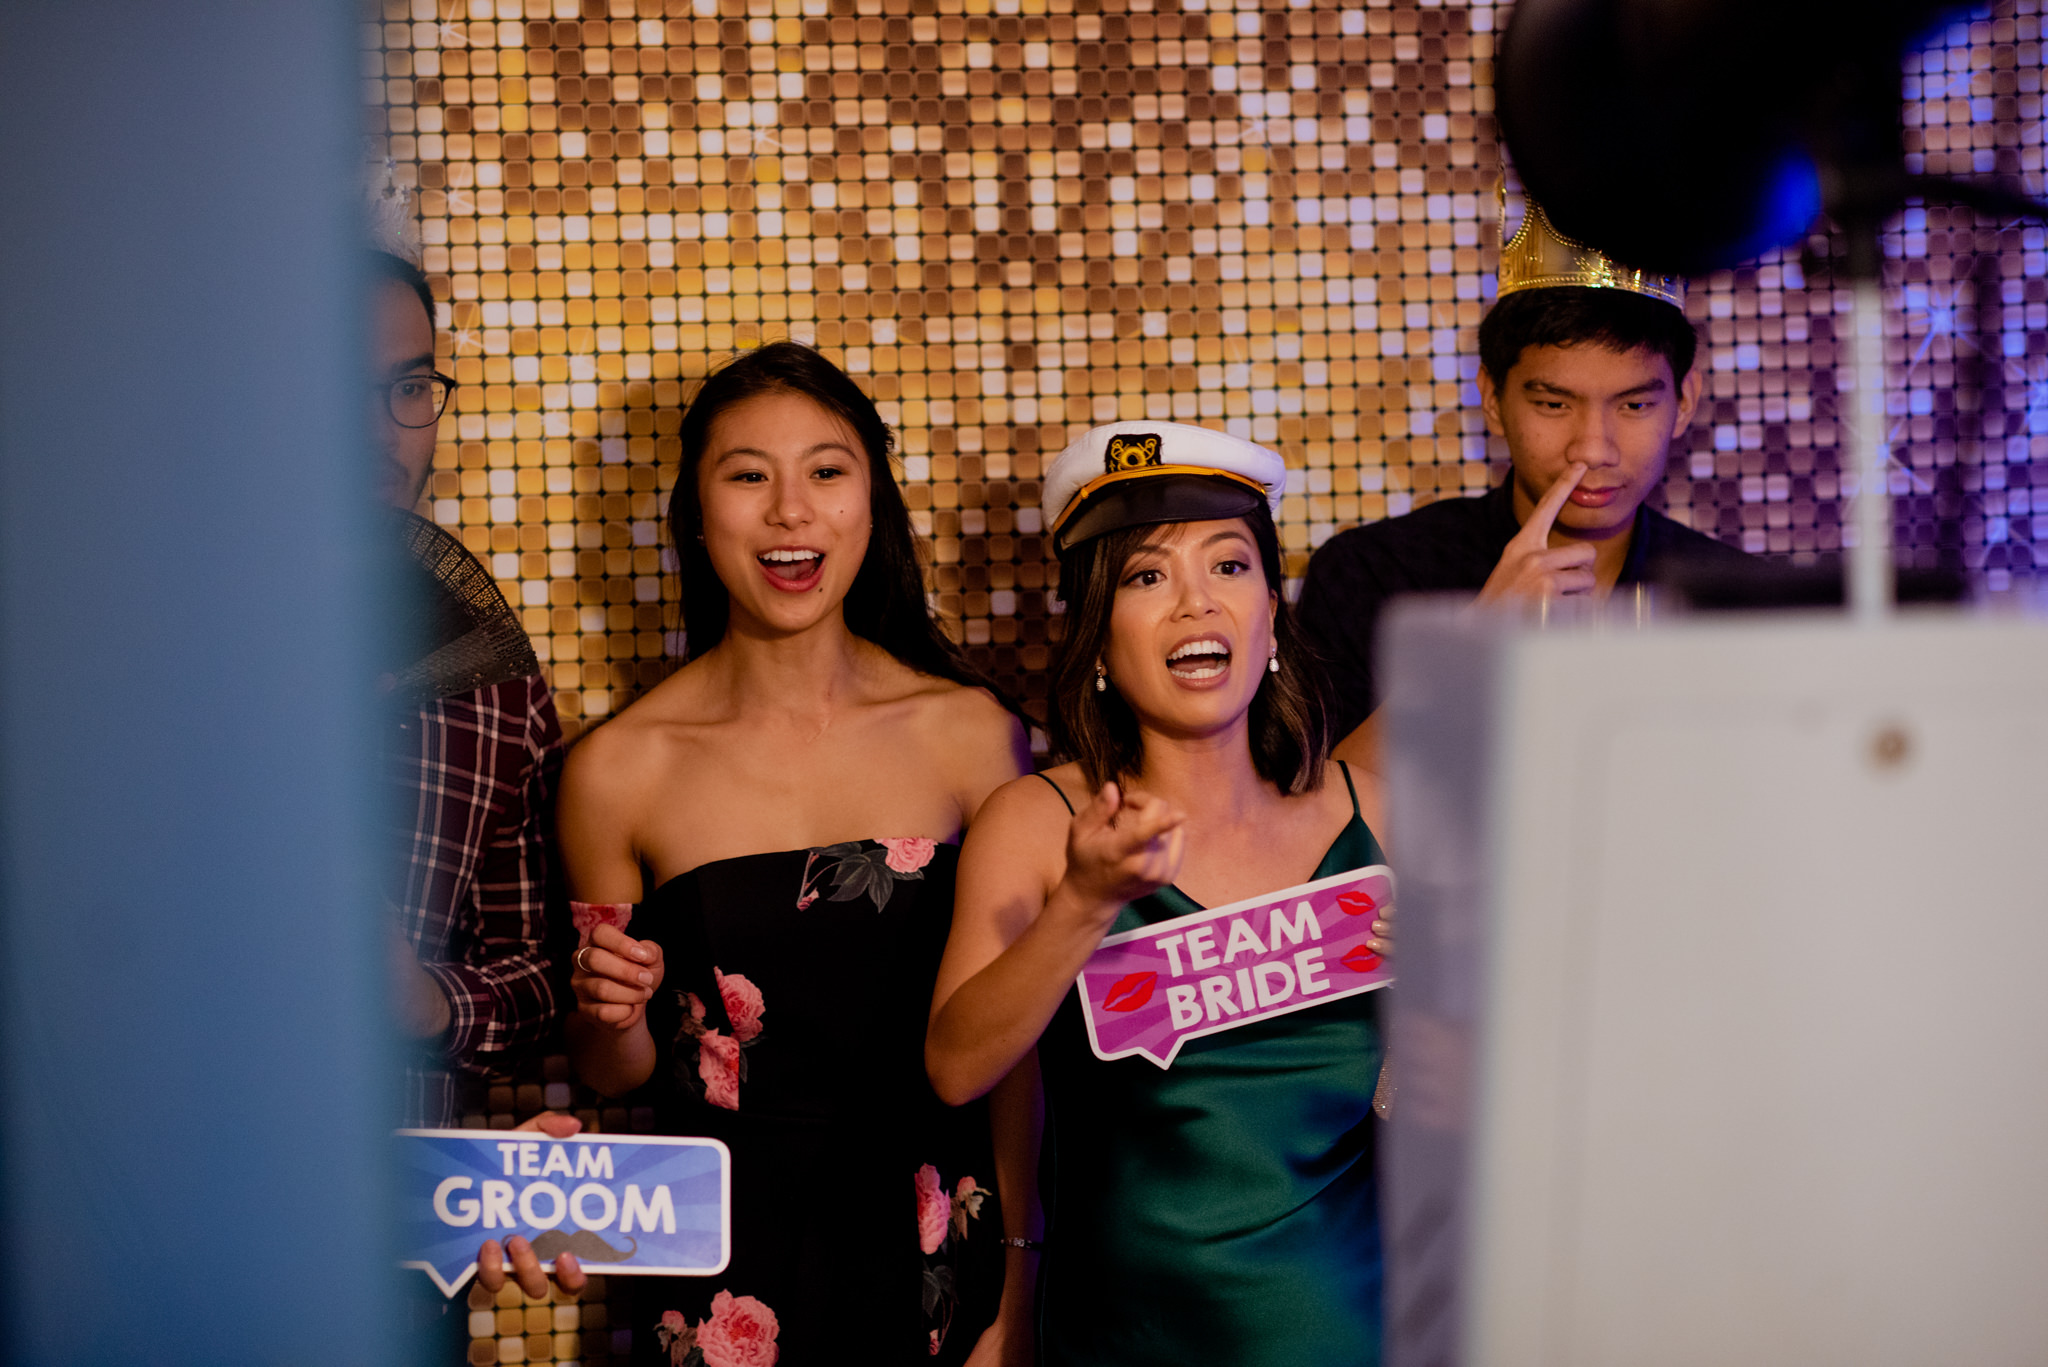 People using a photobooth with a bridesmaid wearing a captain's hat and holding up a sign